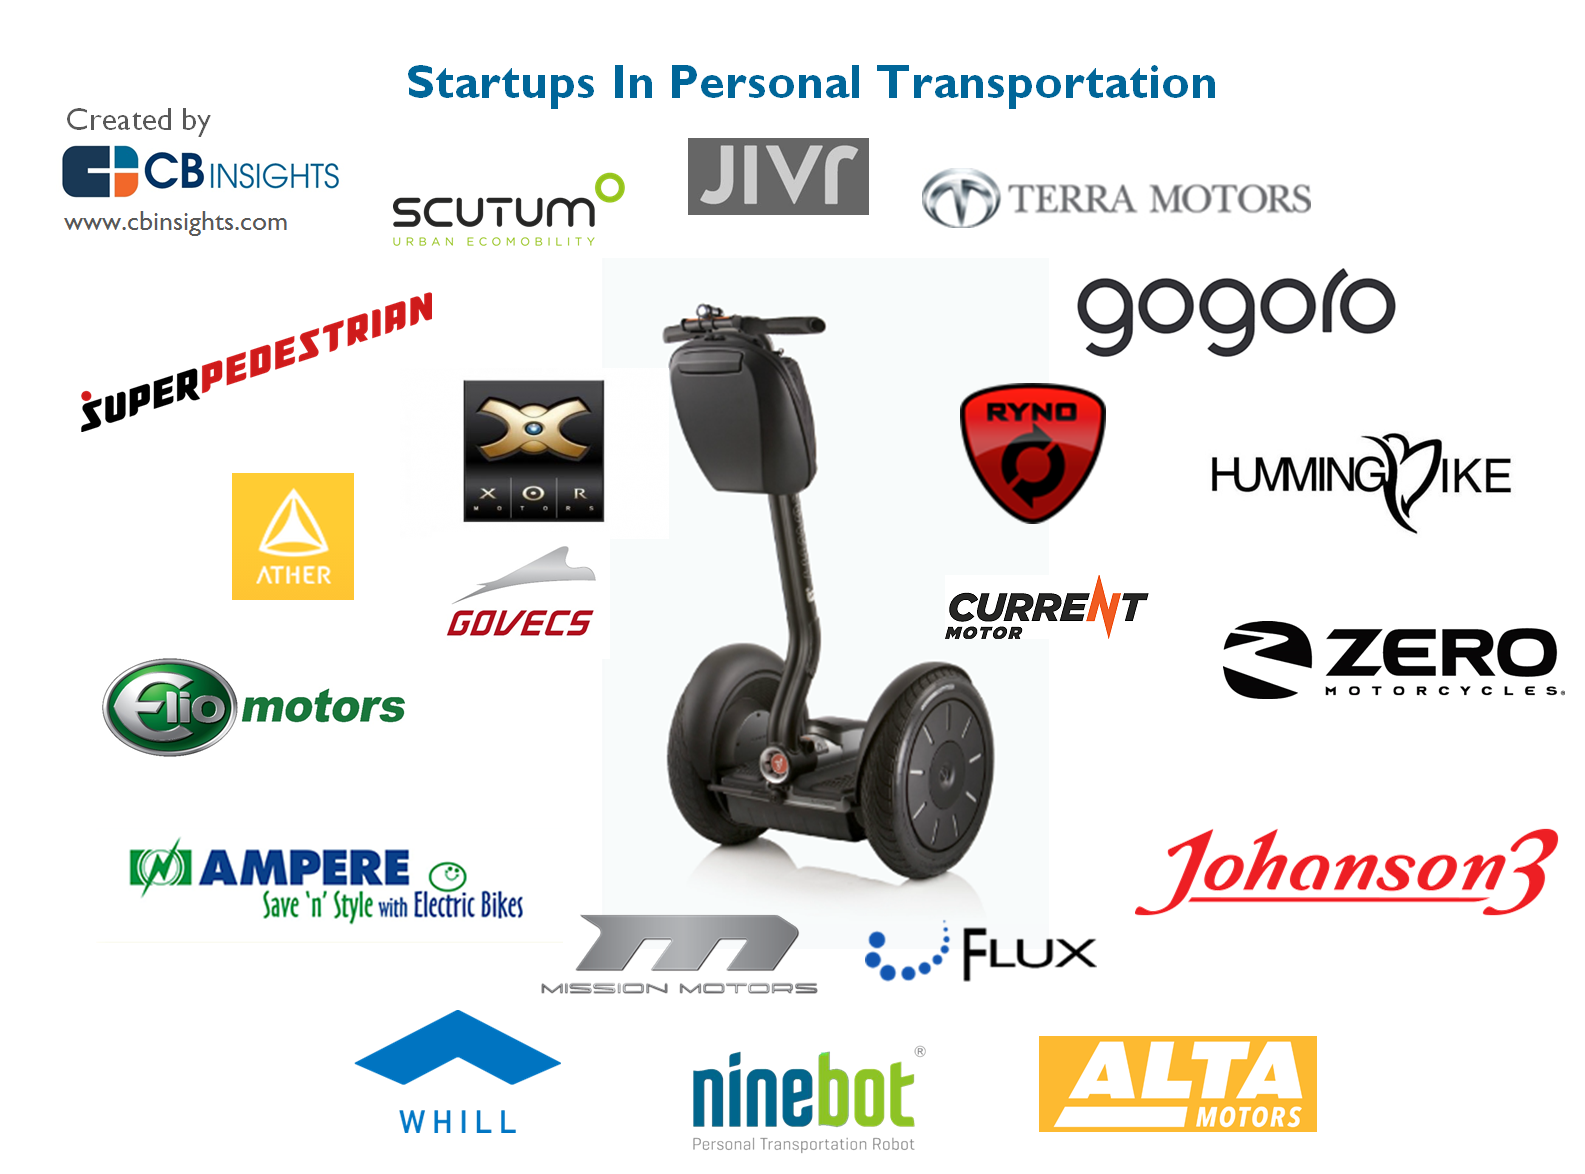 Startups In Personal Transportation